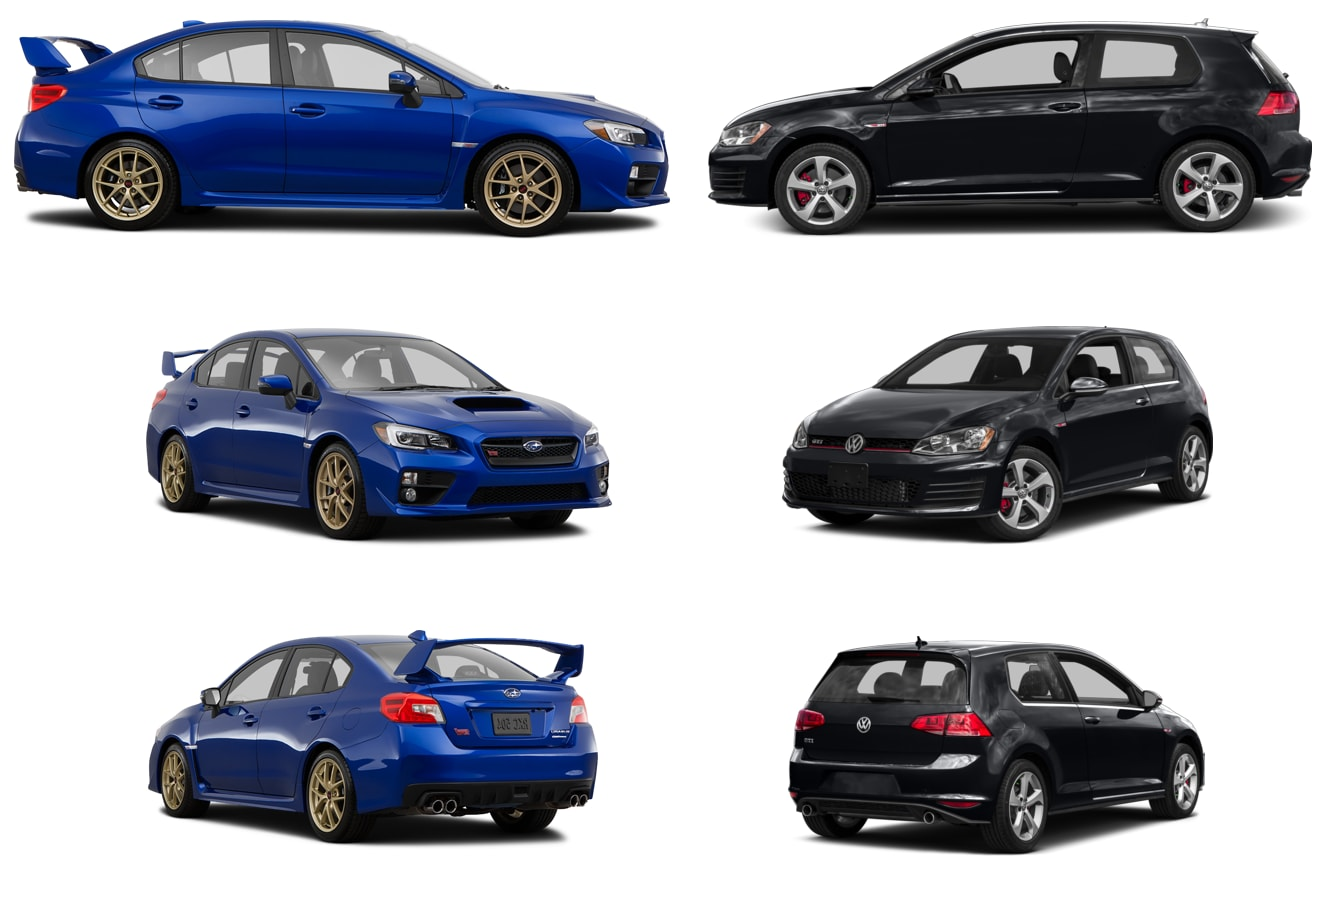 Wrx Vs Gti >> Wrx Vs Volkswagen Gti Old Saybrook Compare Sports Cars In Connecticut